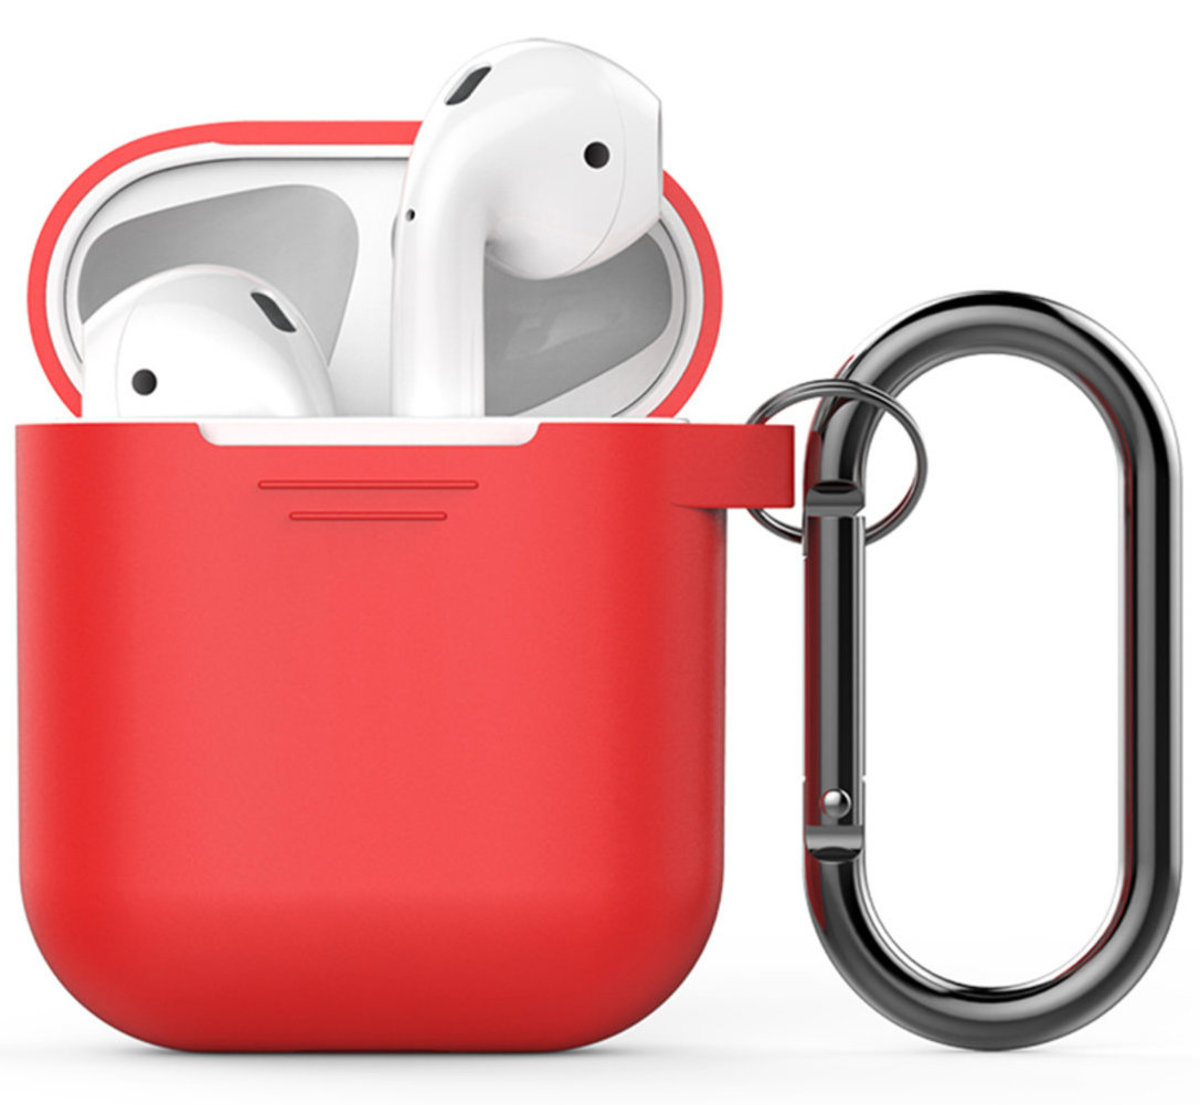 PodFit 2.0  Silicone Case Protective Cover Skin Compatible with Apple AirPods 2 & 1 RED